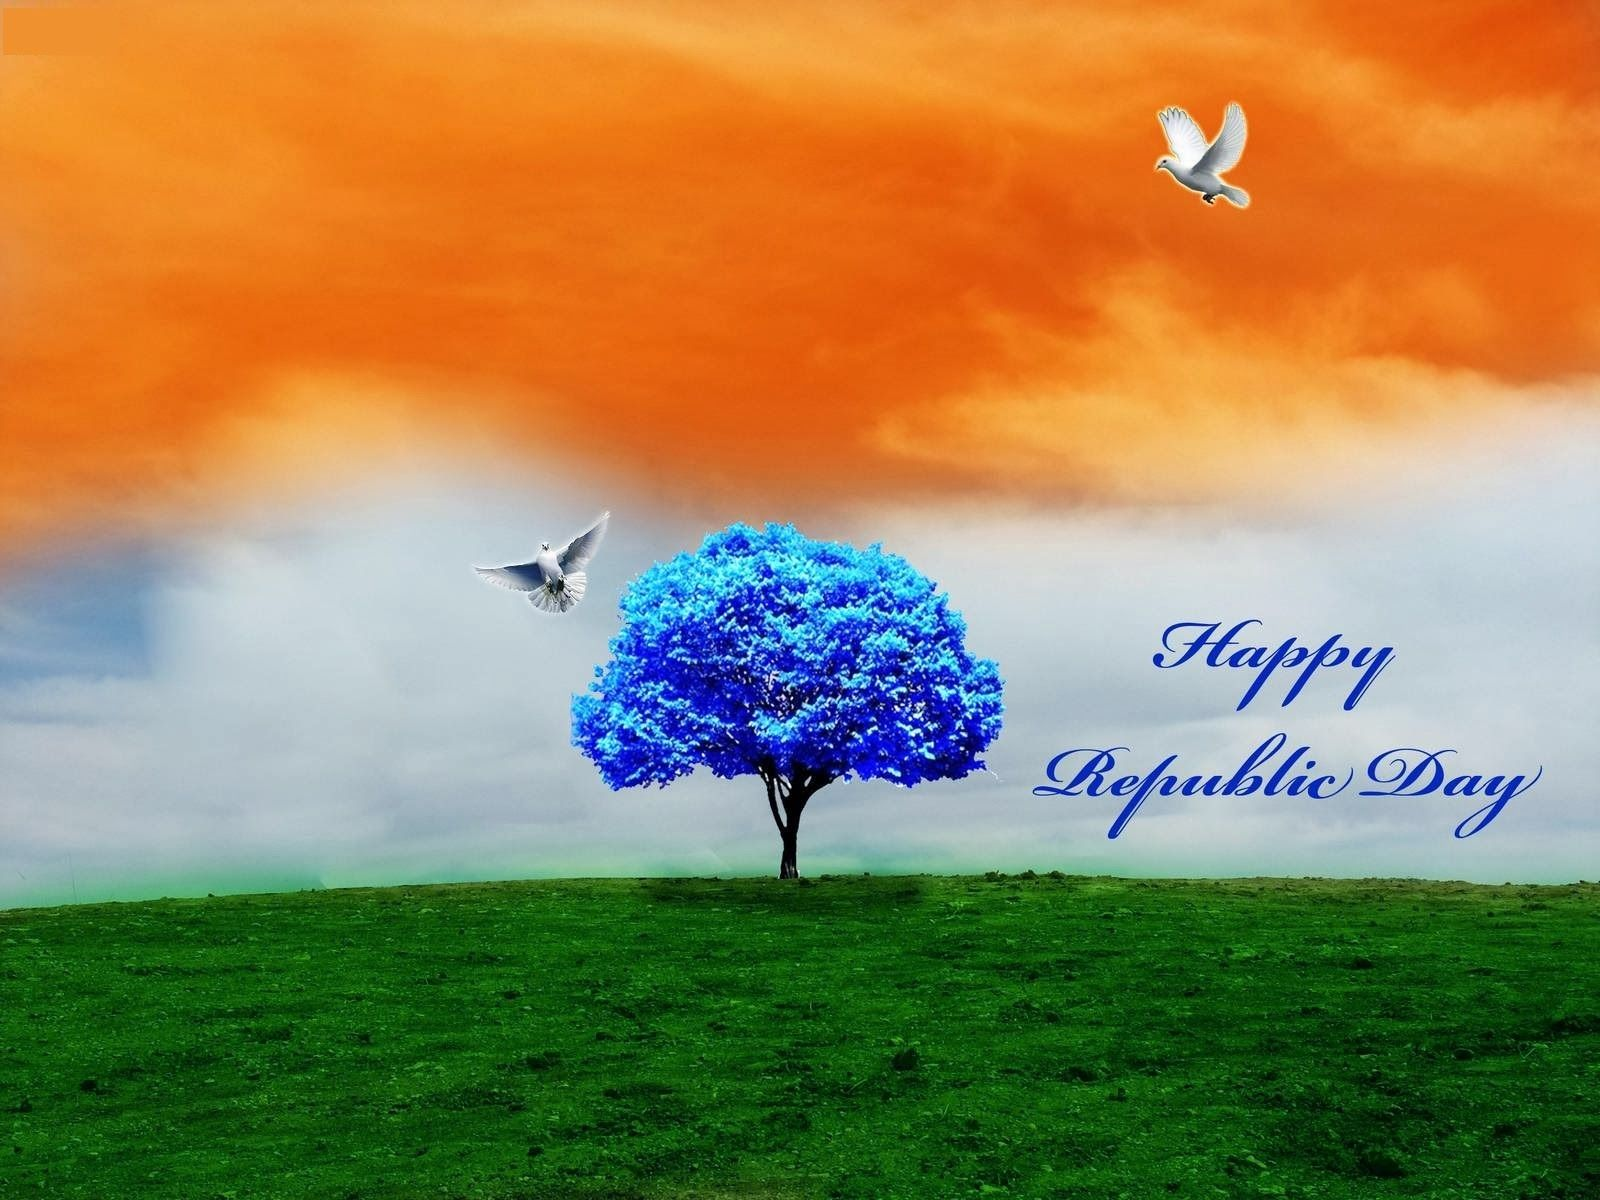 Happy Republic Day 2016 Images Hd Pics Download Photos For 26th